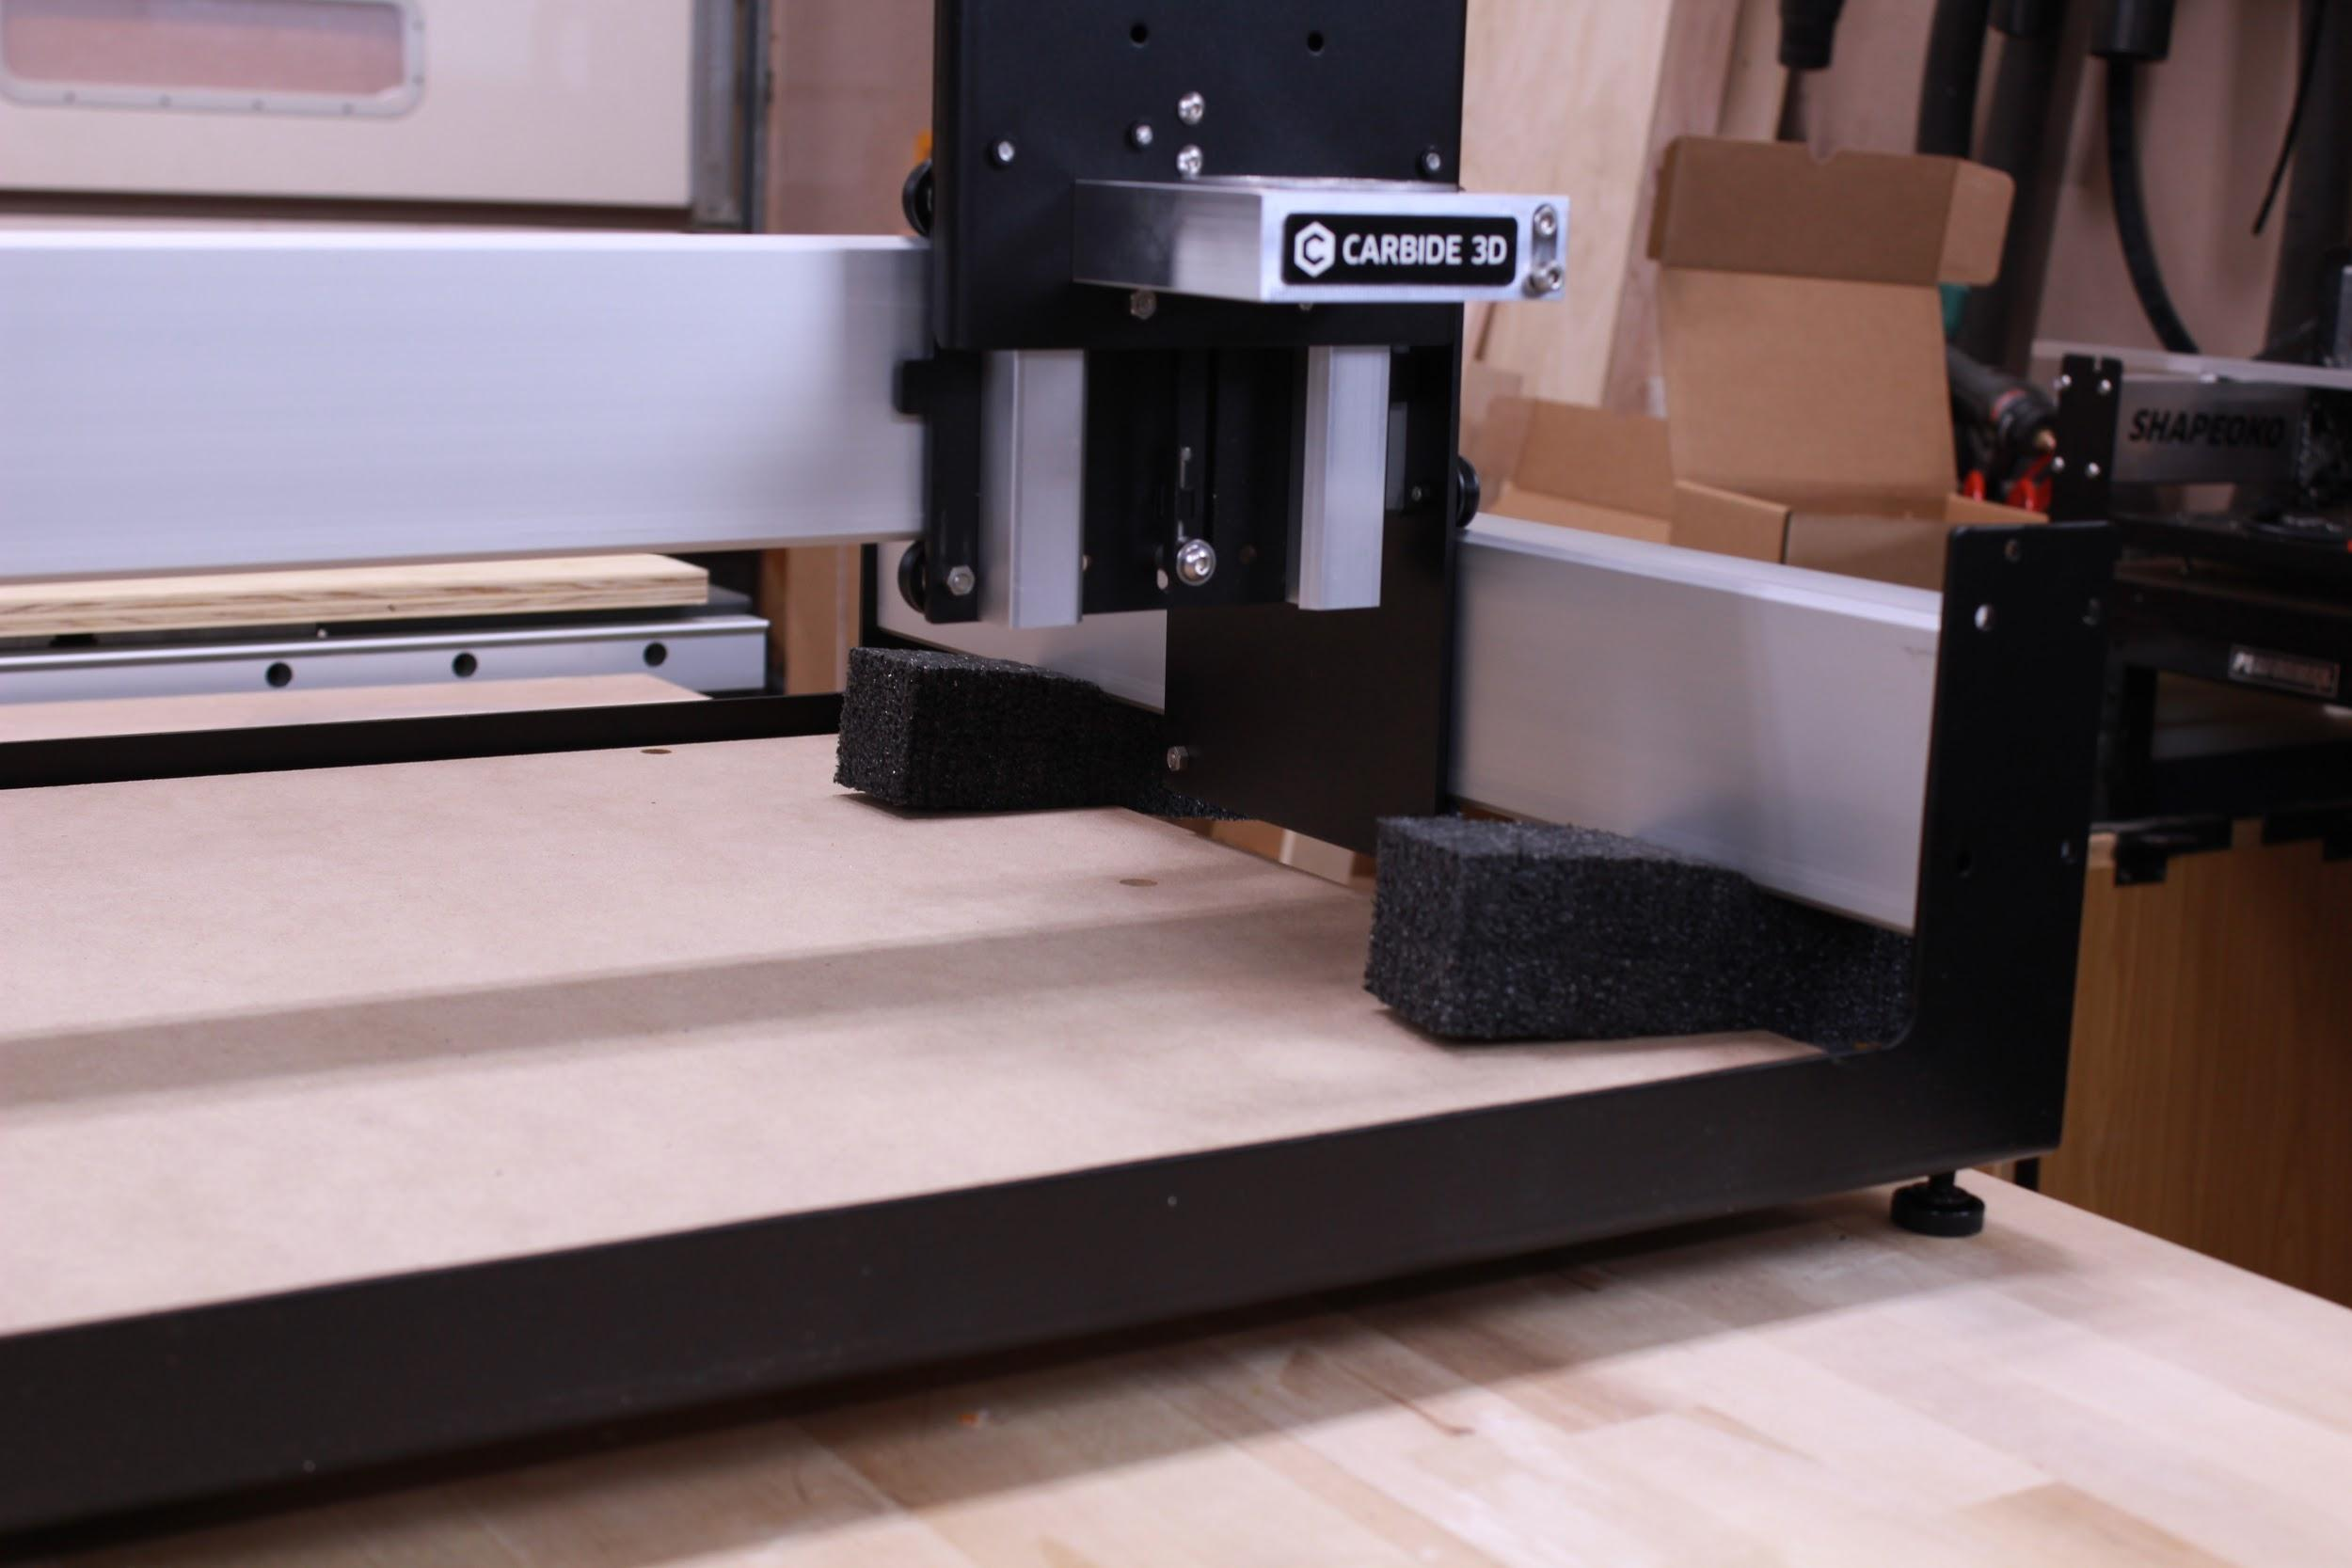 Shapeoko Xl Assembly Guide Carbide 3d Wire Harness Embly Workbench Using The Foam Pads From Y Left And Right Boxes Slide System Into Place Prop Up With Use 1x M6x12mm Bhcs In Front Rear Of Side